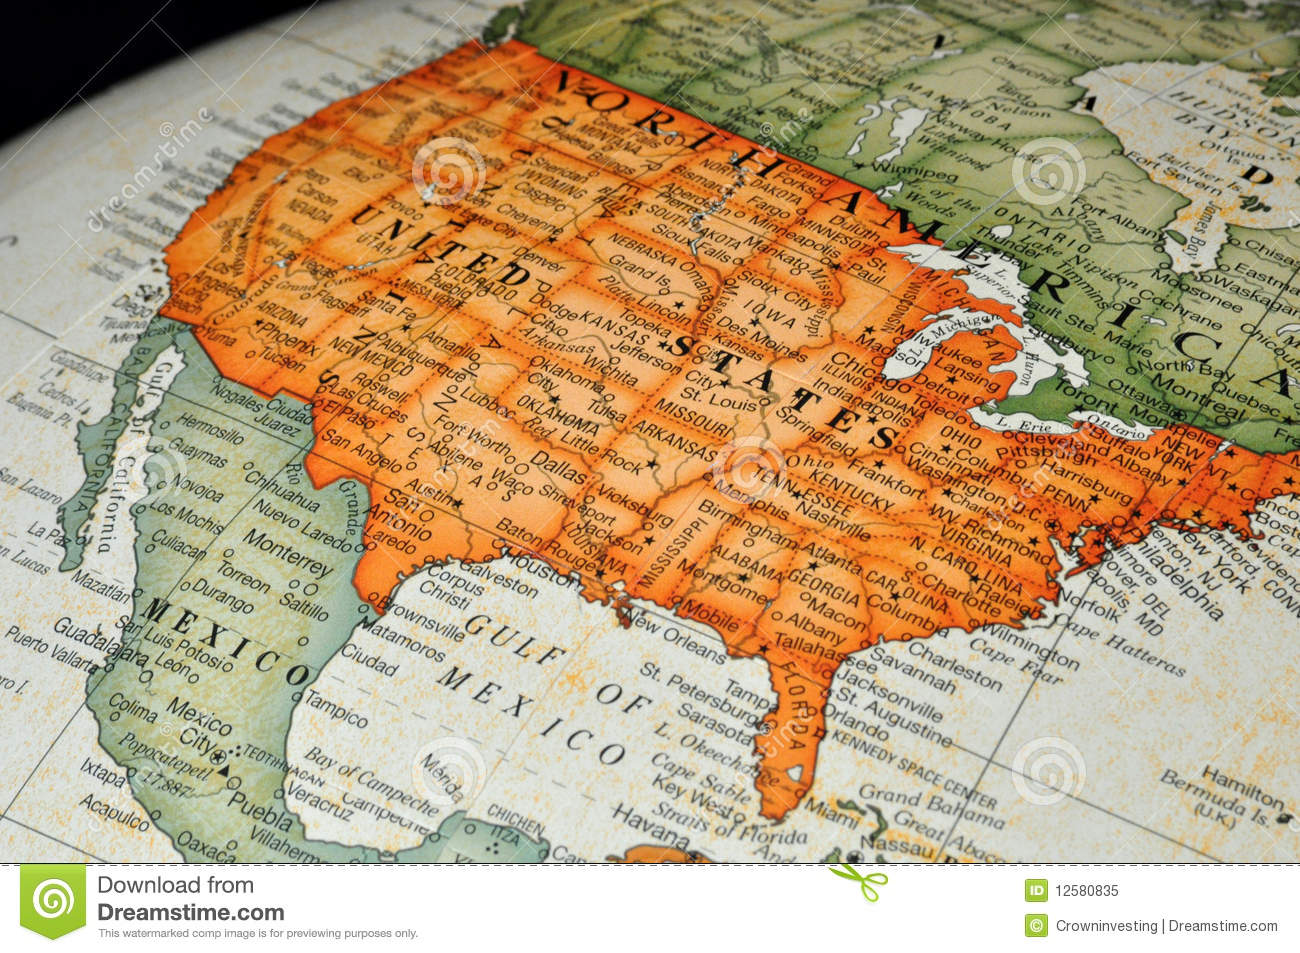 Globe Or Map Of United States Stock Image   Image of west, texas